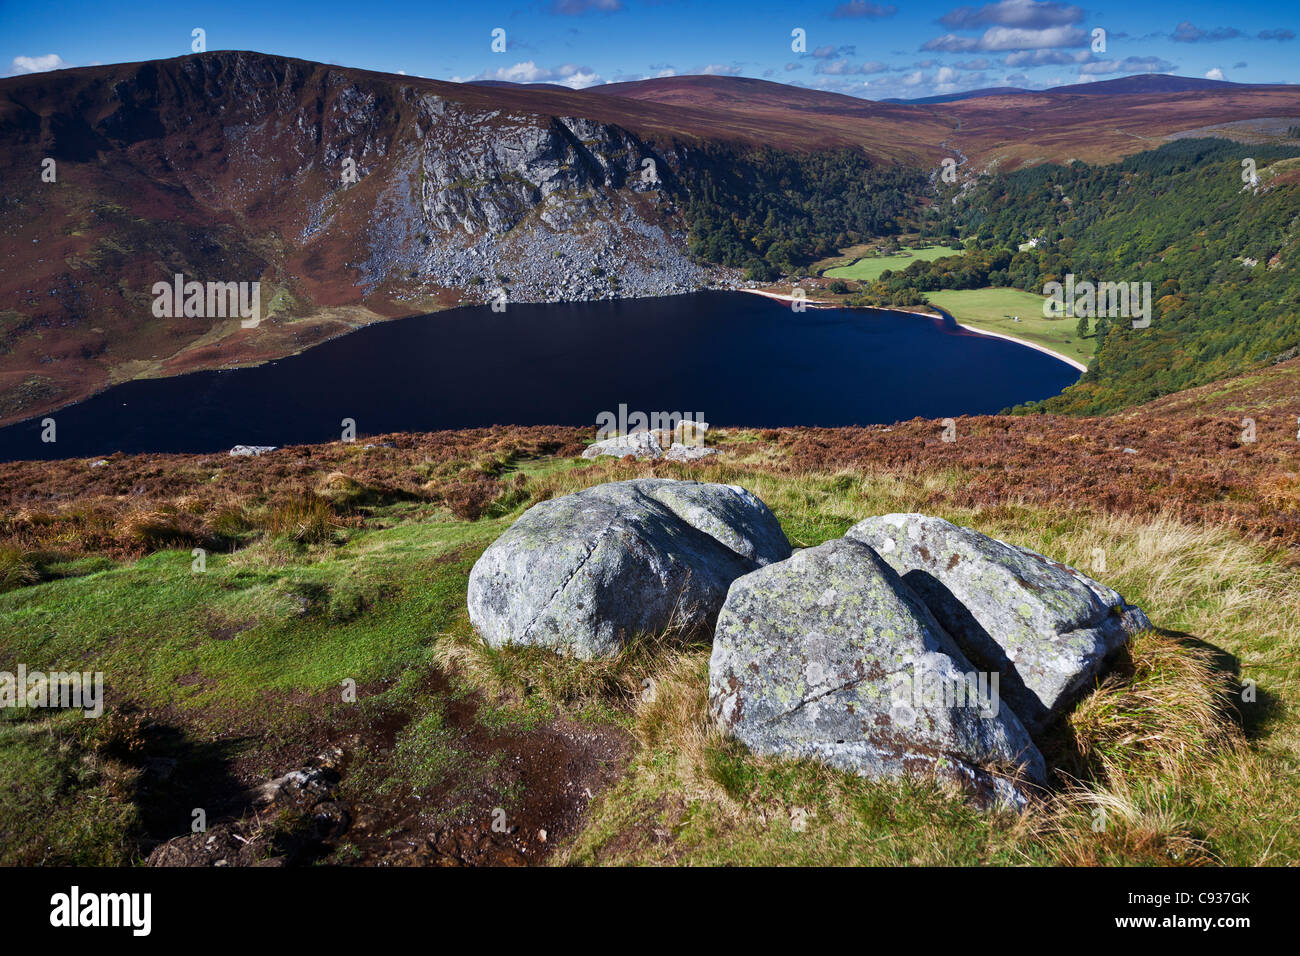 Ireland, Co. Wicklow, Luggala, Lough Tay, view looking towards, Luggala Mountain, the Luggala Estate and Sally Gap. - Stock Image